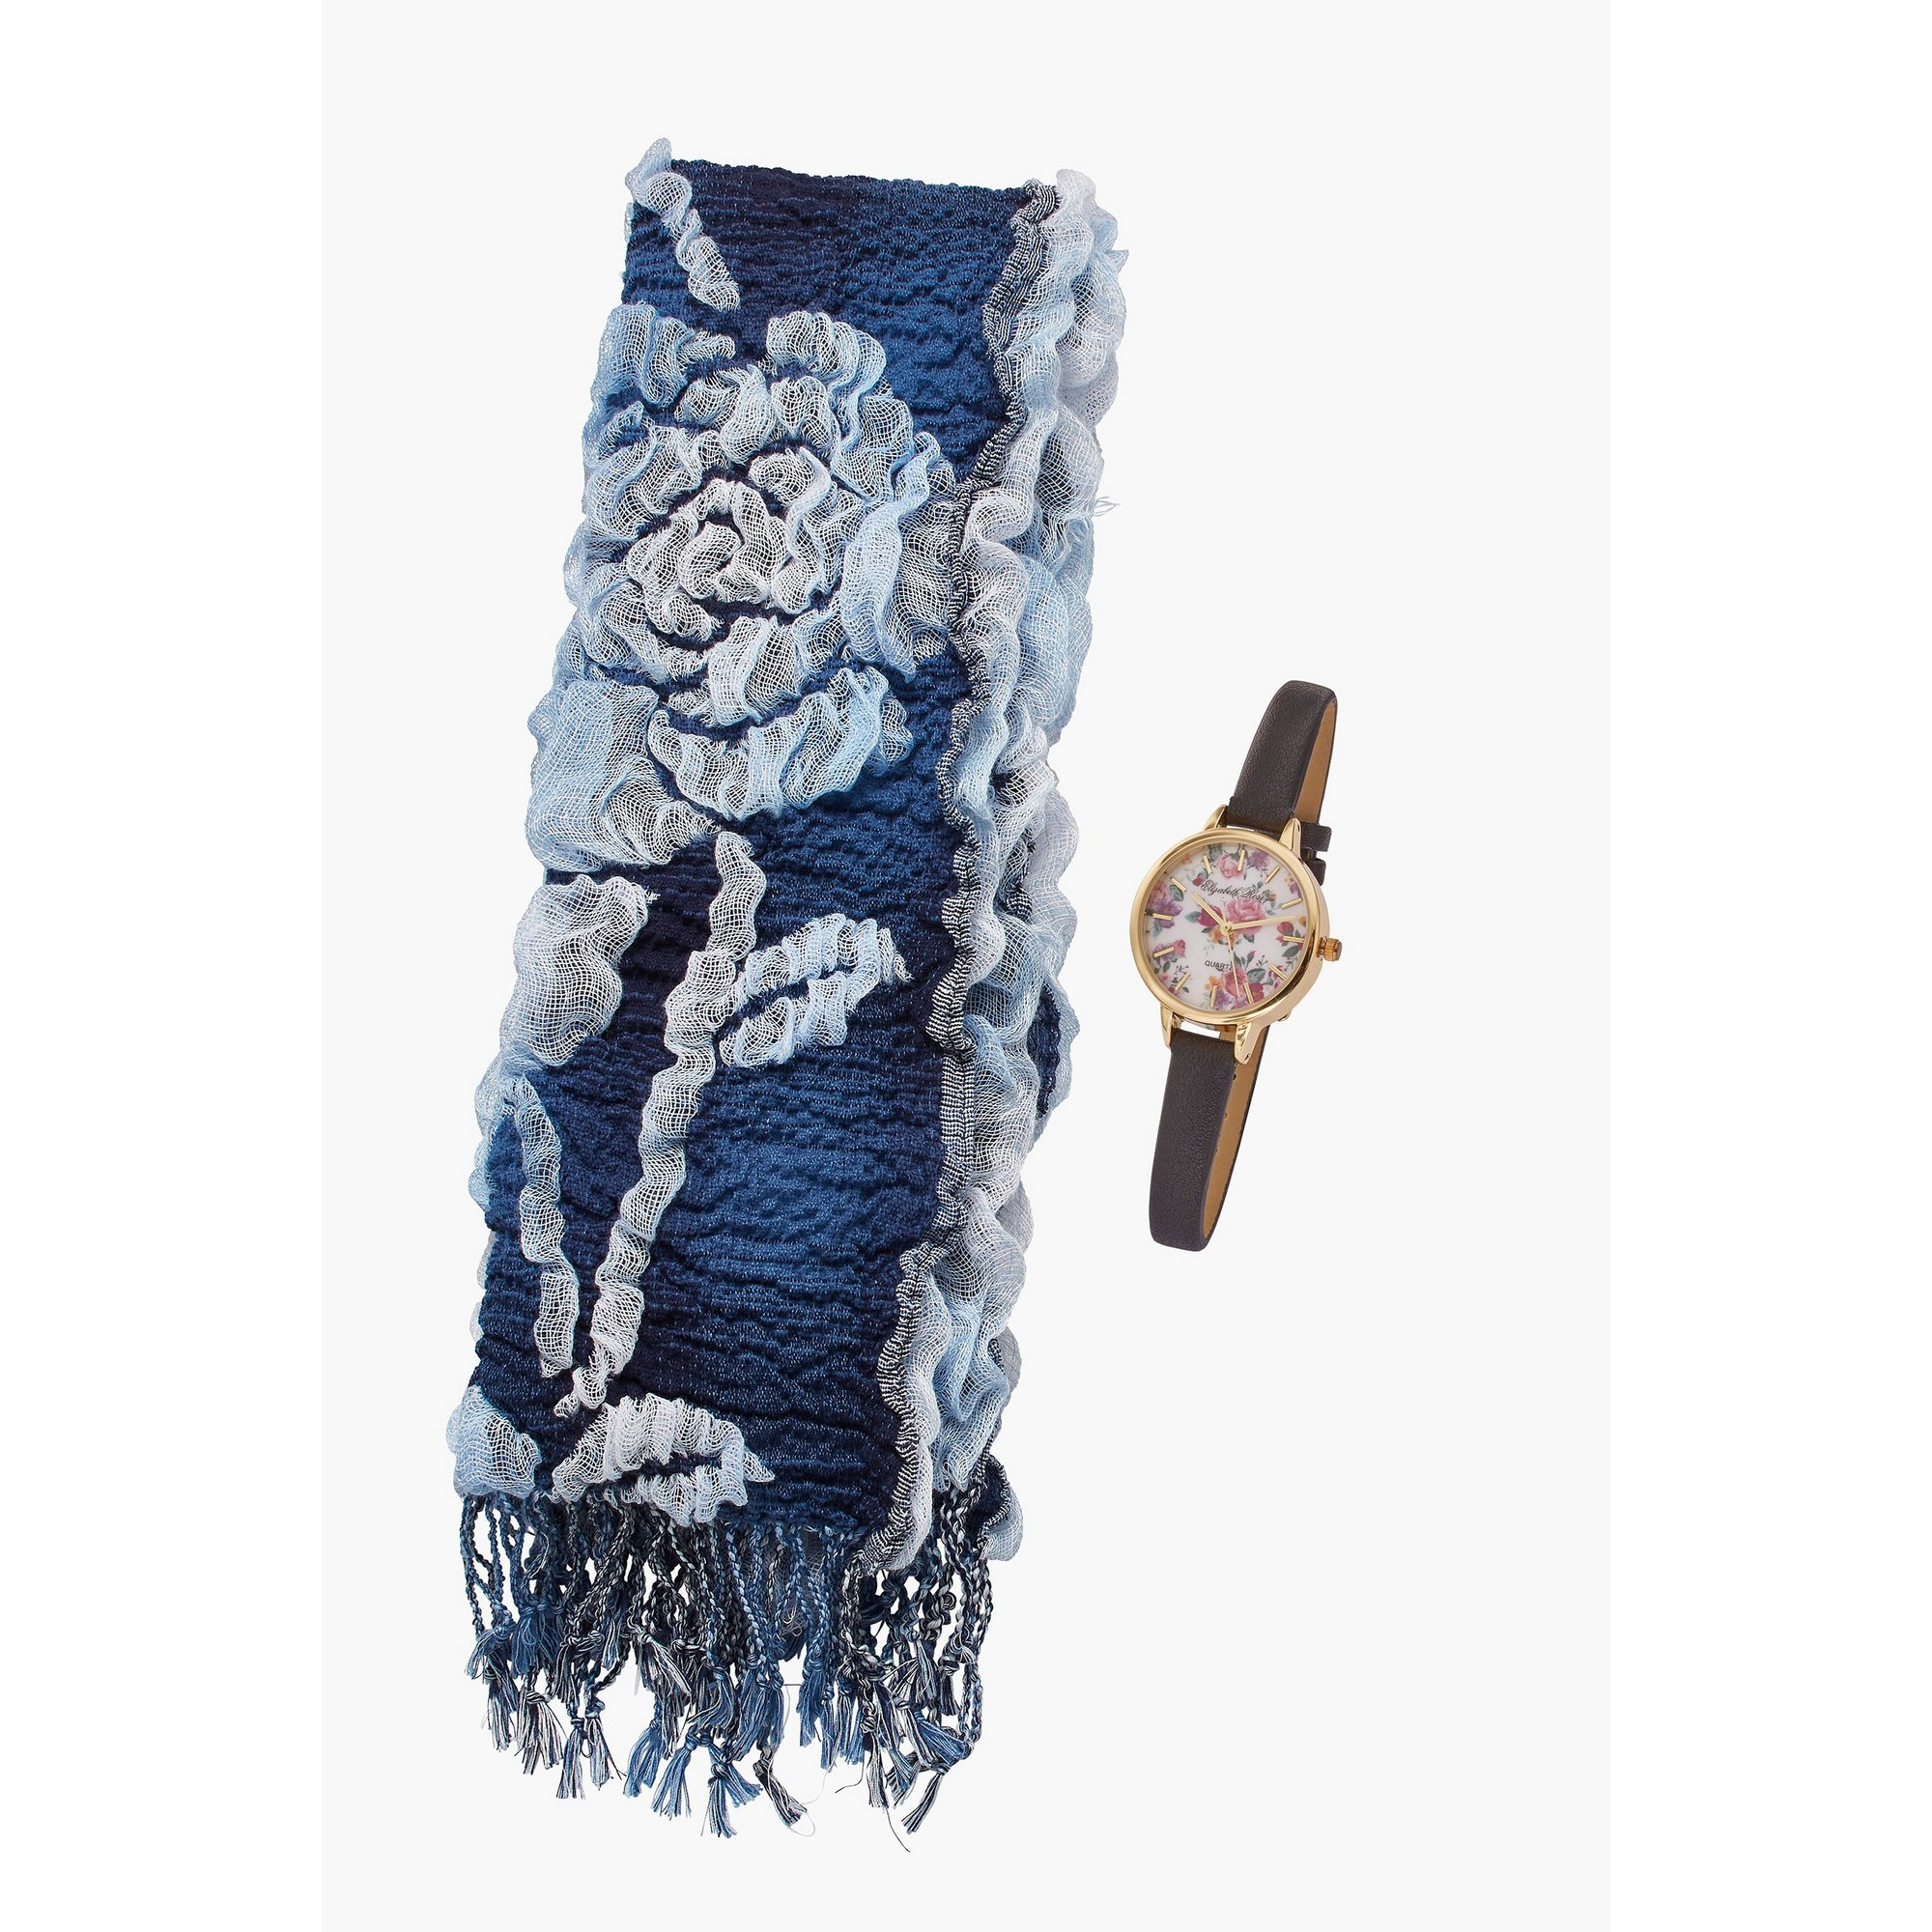 Image of Ladies Elizabeth Rose Floral Watch and Floral Scarf Gift Set